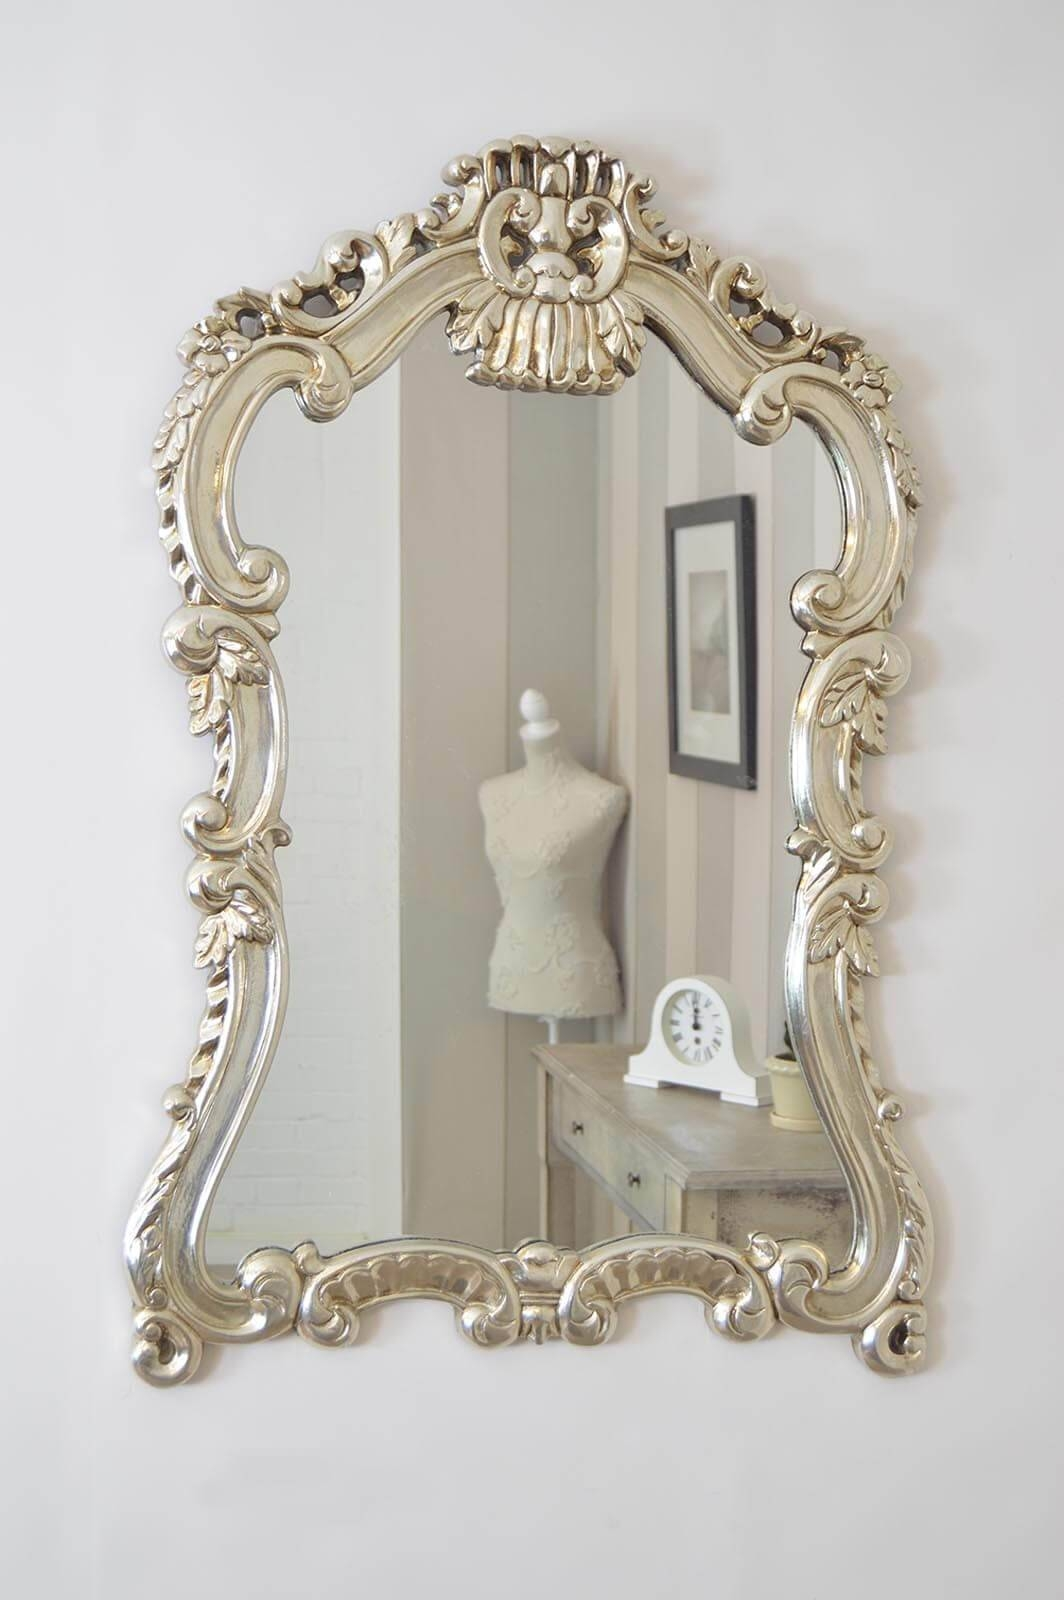 Decorative Ornate Mirrors : Wall Vs Floor, Which One Better intended for Silver Ornate Wall Mirrors (Image 9 of 25)